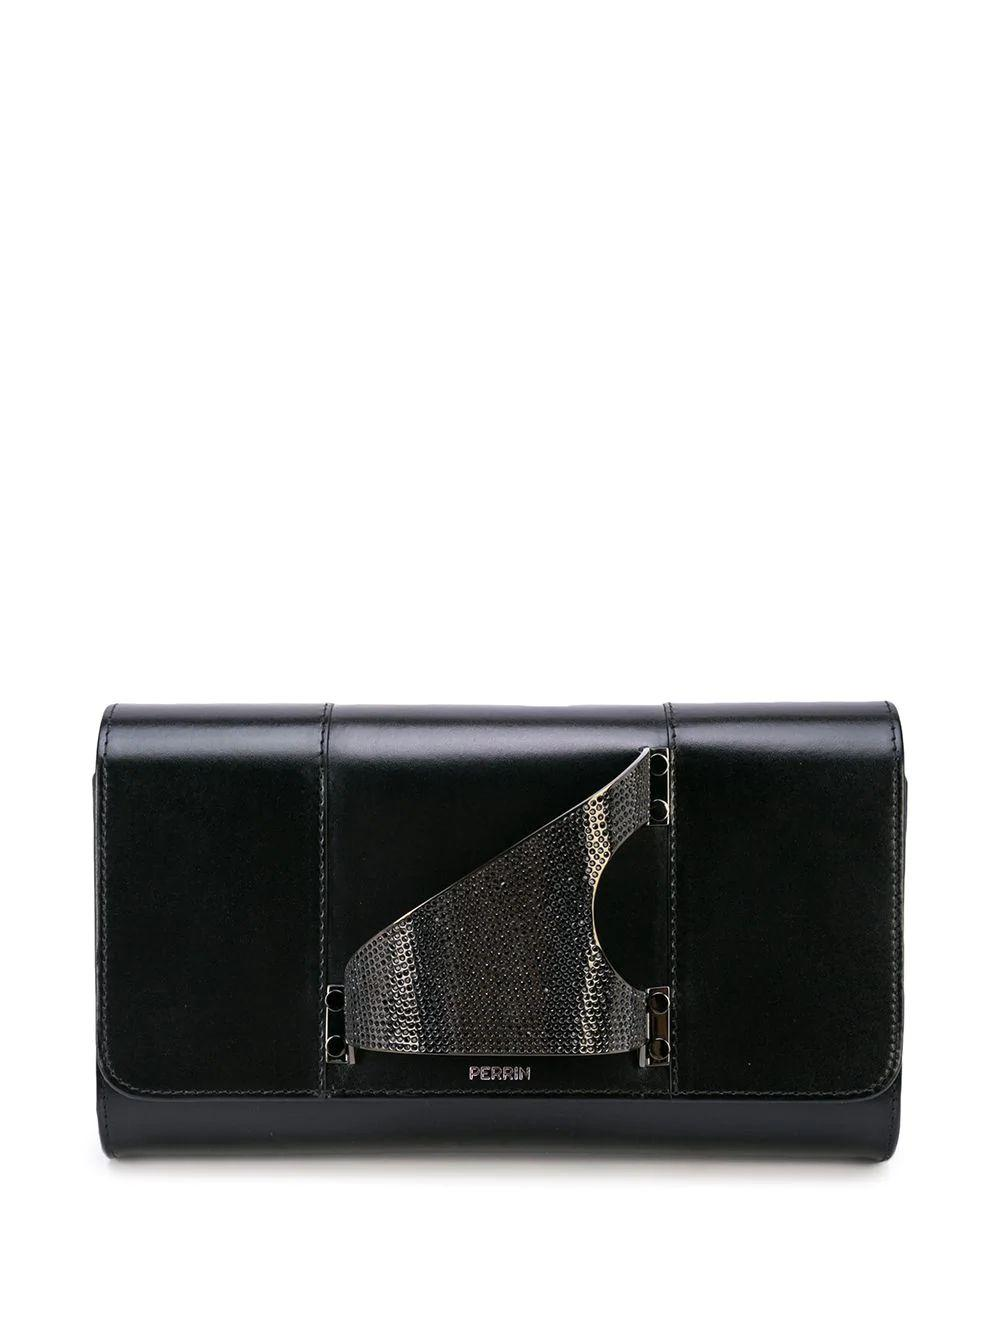 L'Eiffel Leather Clutch With Strass Ruthenium